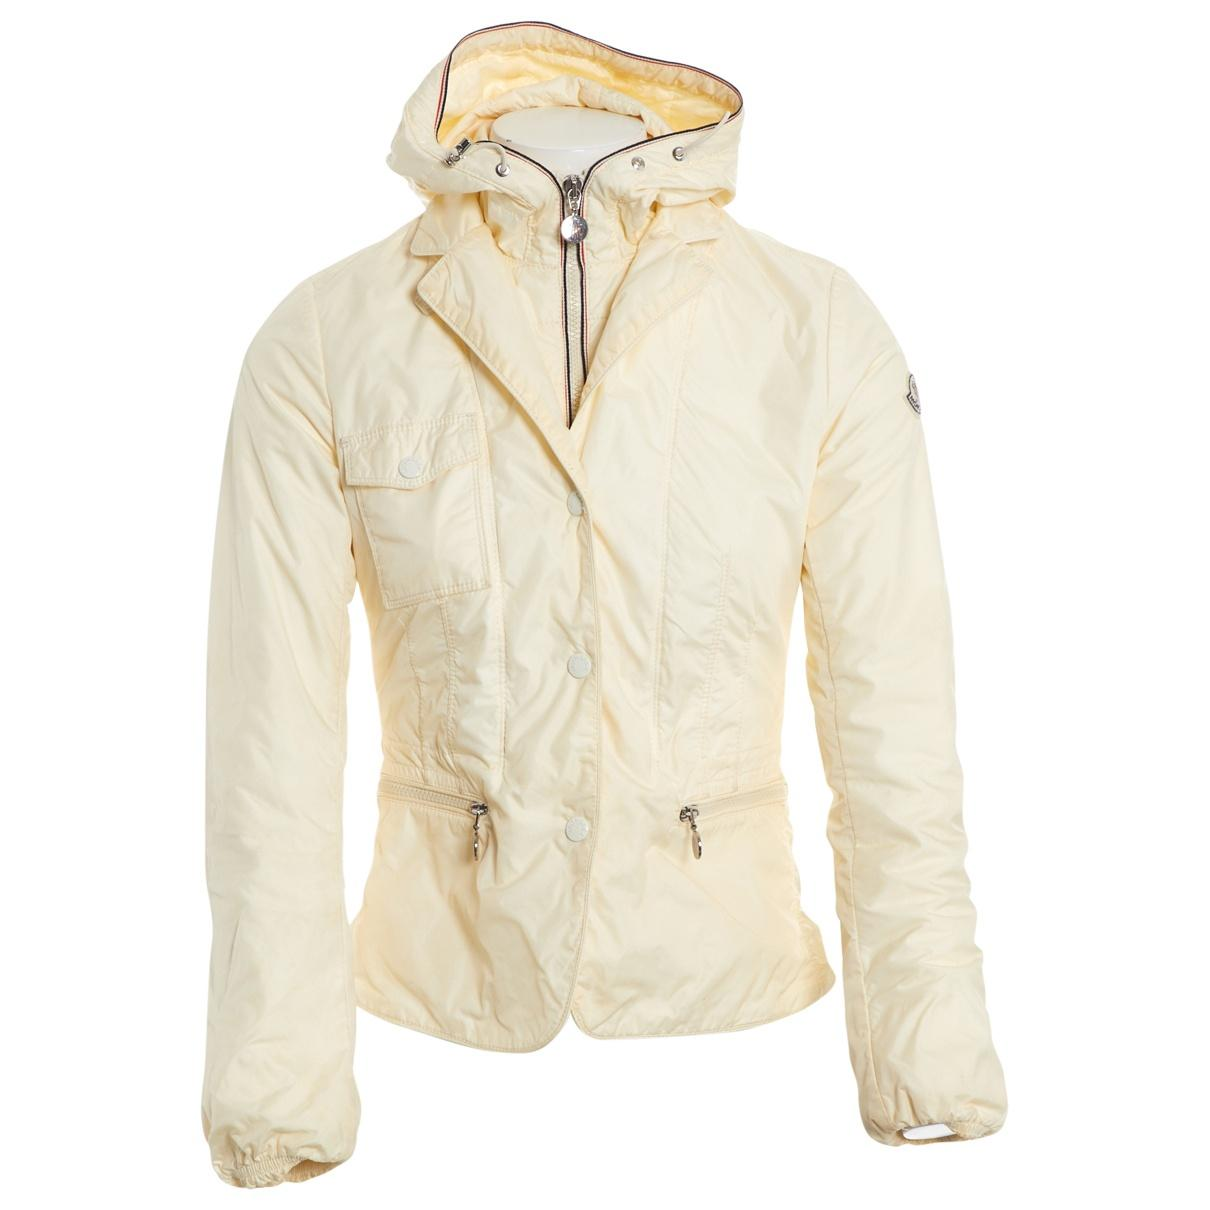 9587aa1ad Lyst - Moncler Ecru Synthetic Jacket in Natural